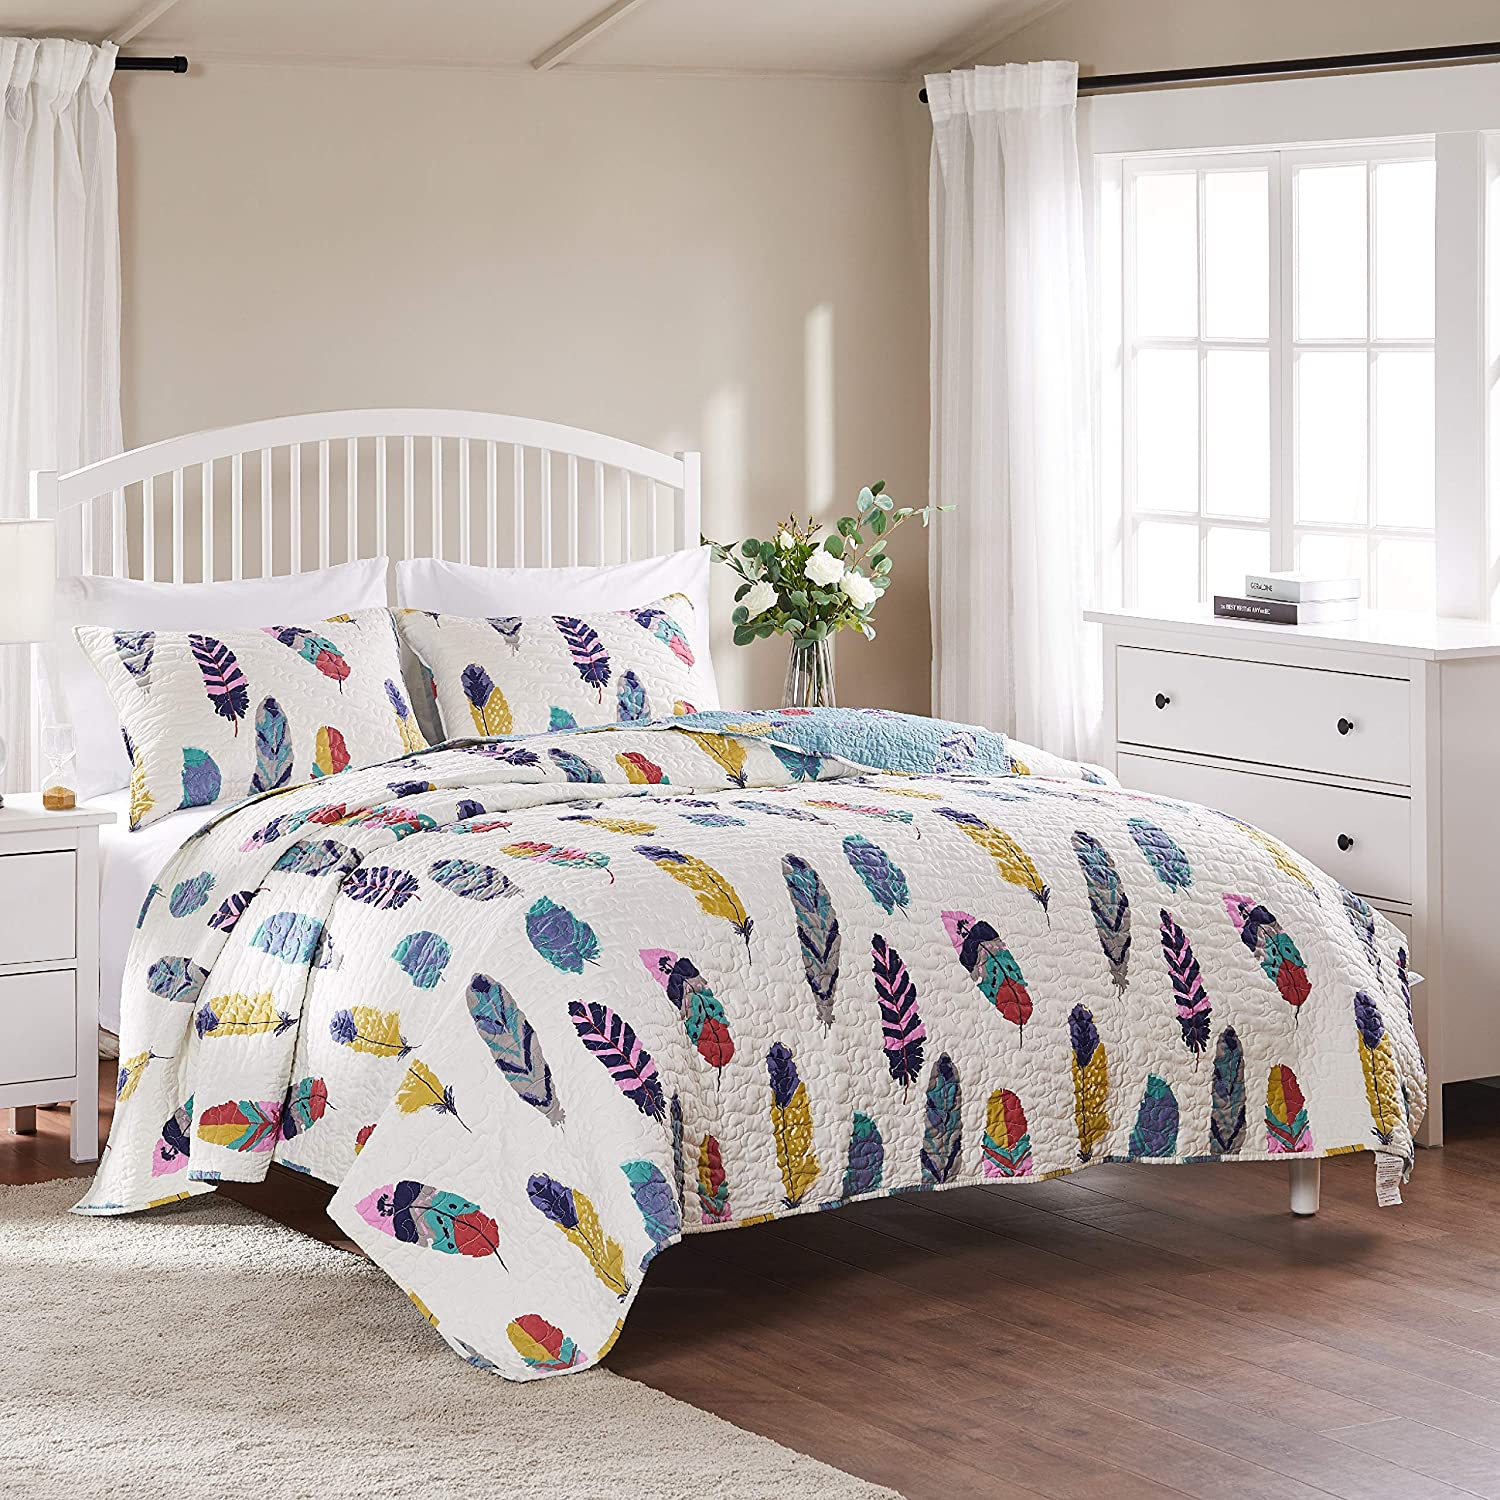 Greenland Home Dream Catcher Quilt Set, 3-Piece Full/Queen